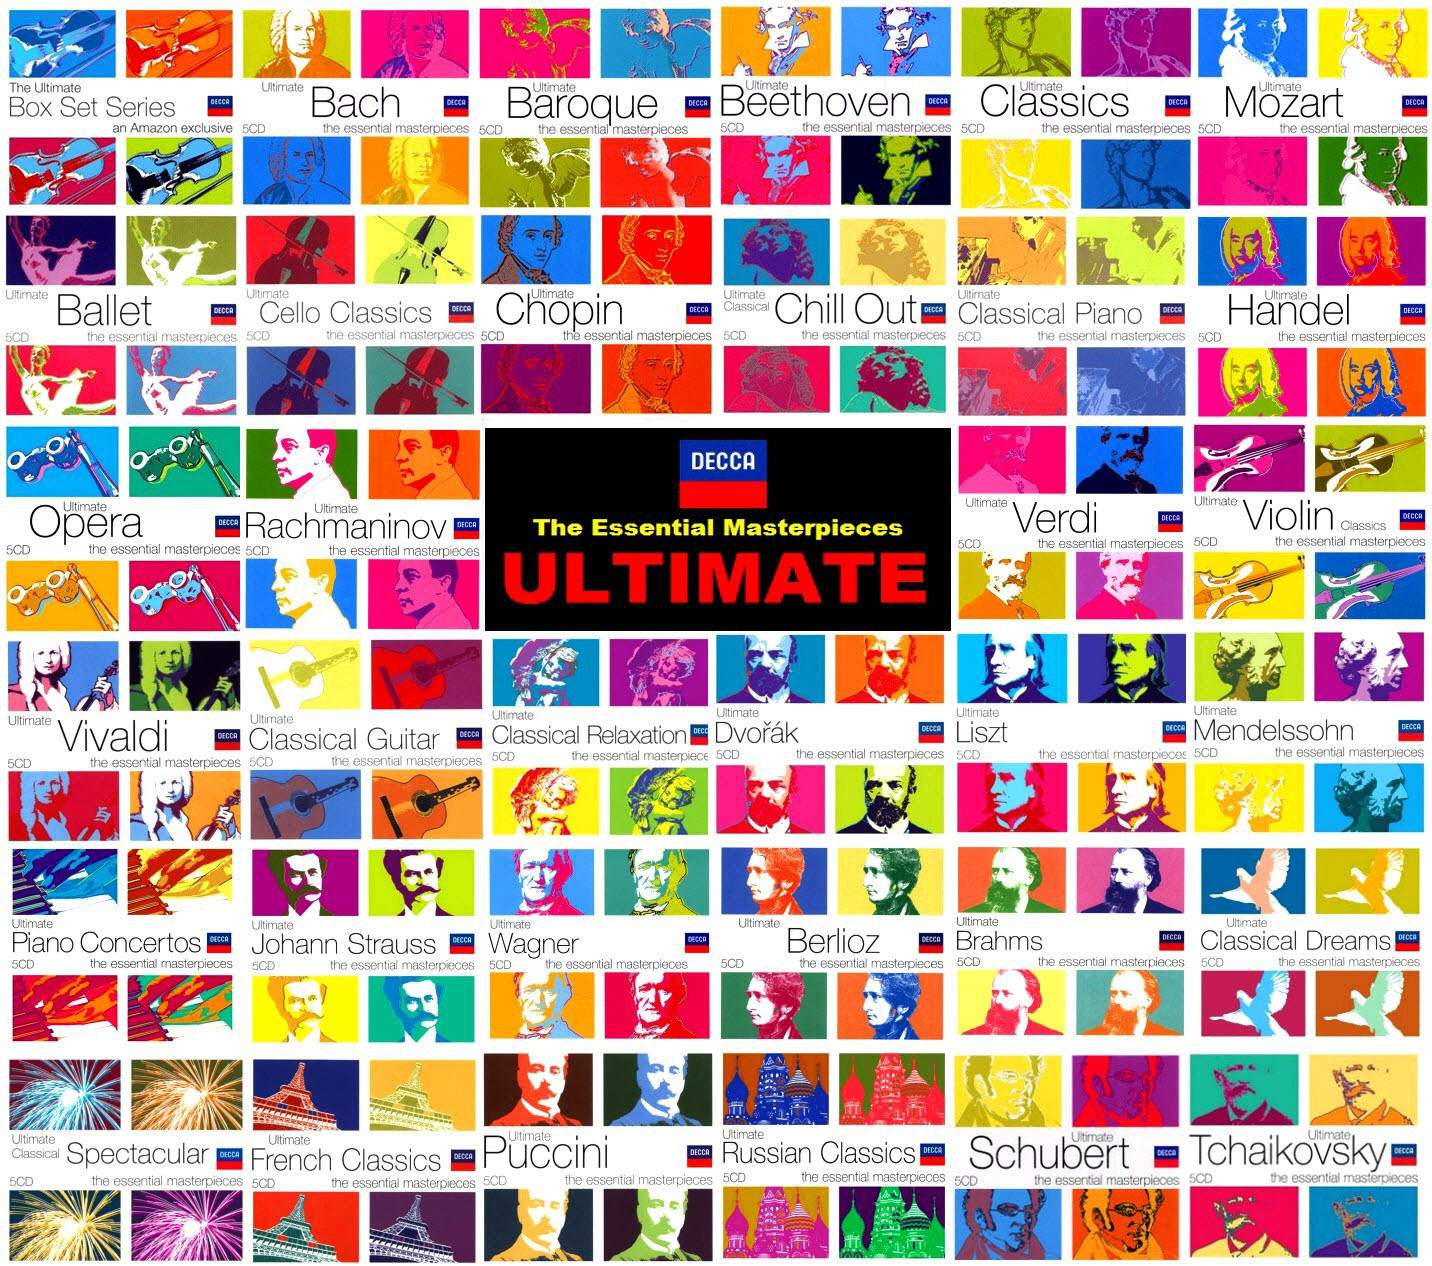 Decca: The Ultimate Box Set Series (170 CD) The Essential Masterpieces (1997-2009)